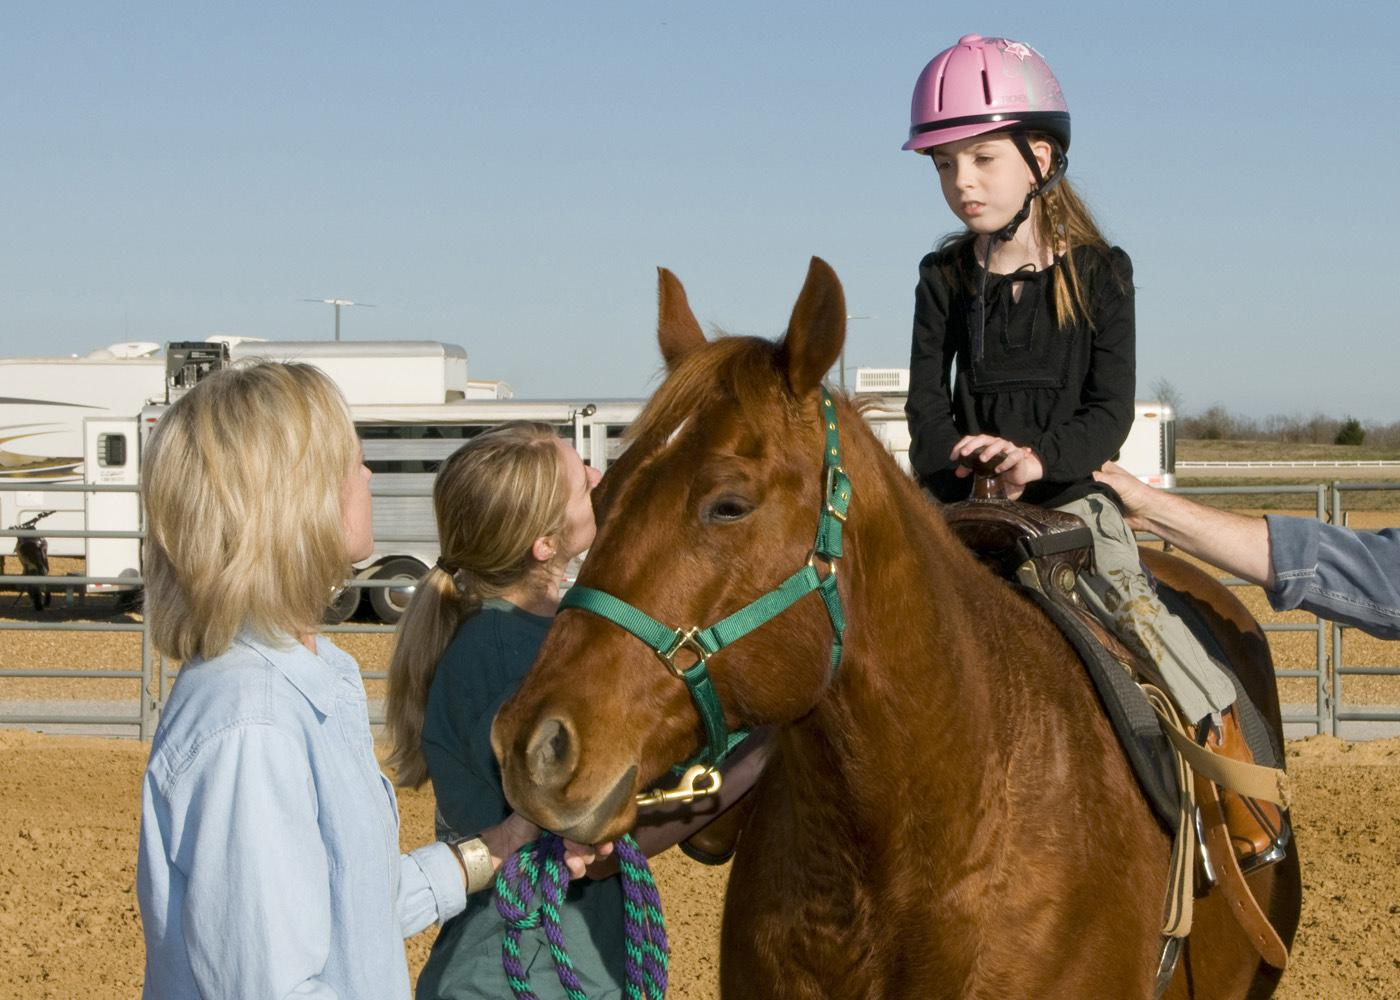 Mary Riley, coordinator for Mississippi State University's 4-H therapeutic riding program, and volunteer Shanna Holder, talk to 9-year-old Elizabeth Howard of Columbus as she sits atop her favorite horse, Bob. Howard's parents, Tommy and Brenda, are donating funds to construct a new therapeutic activity center in West Point. (Photo by Marco Nicovich)